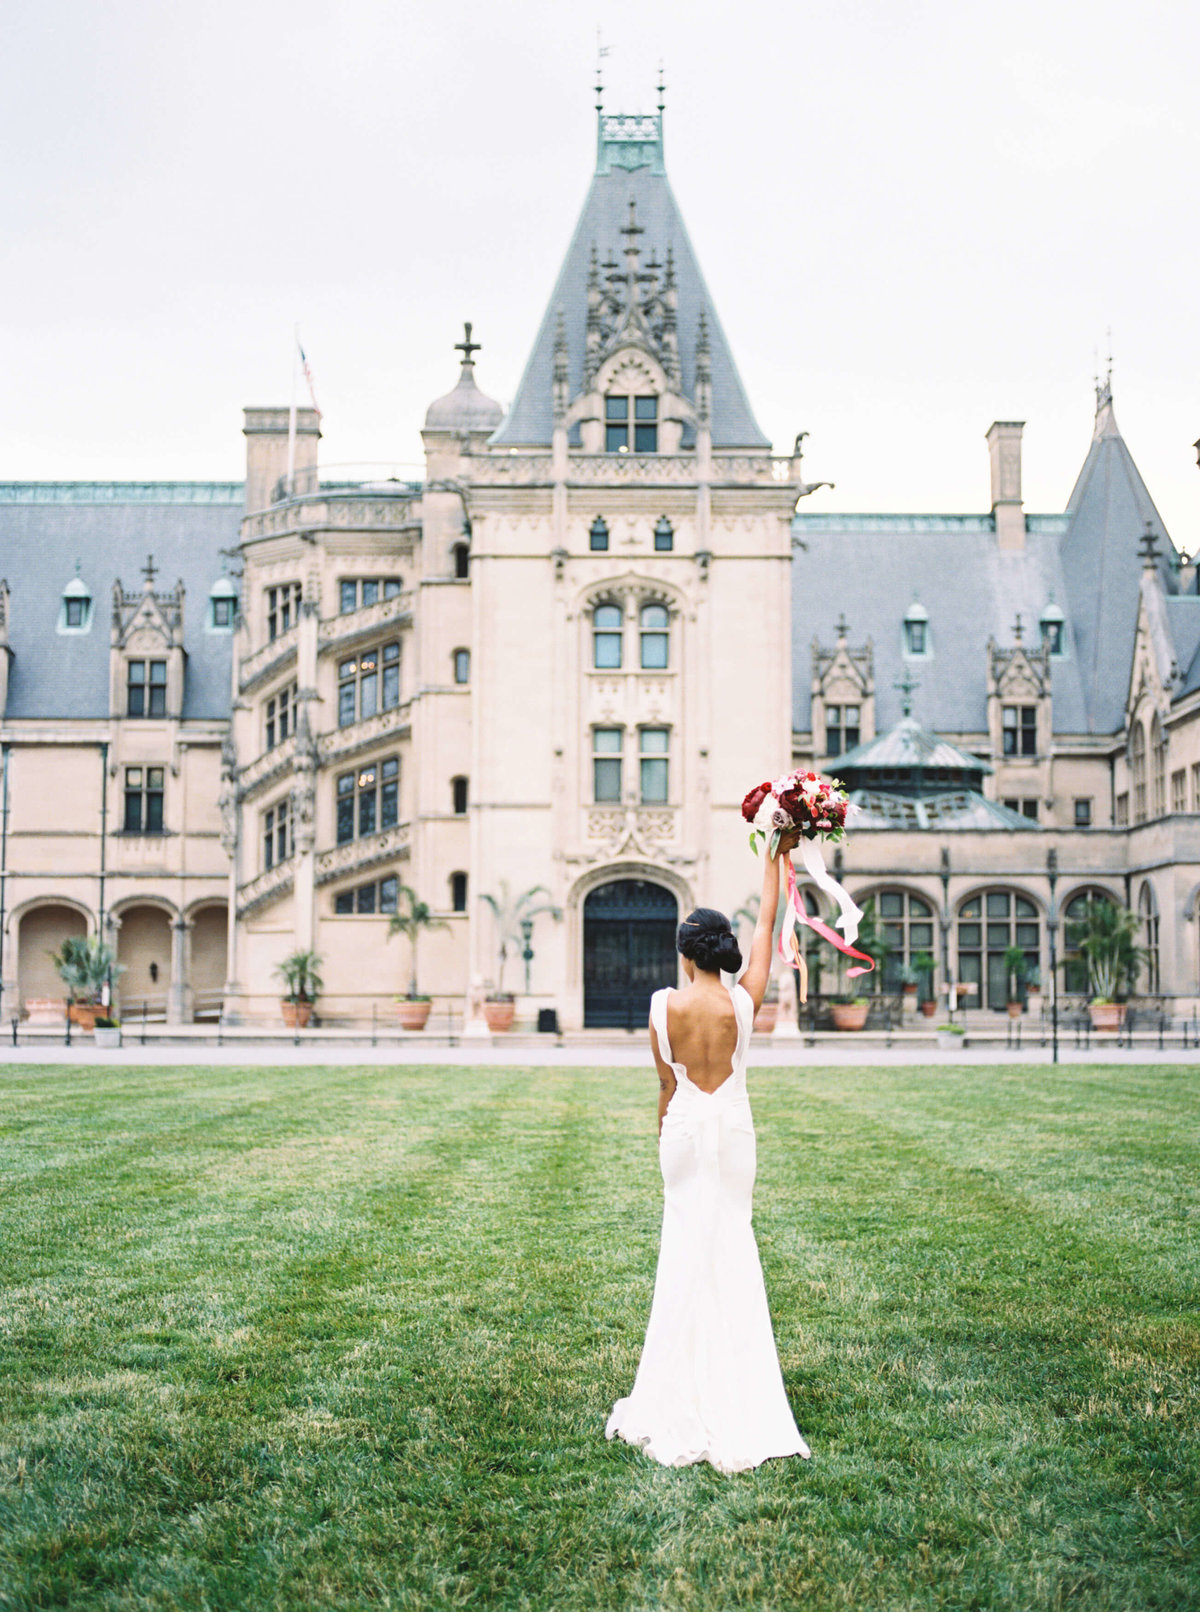 Biltmore Estate wedding photographer, Asheville Wedding Photographer, Henry Photography-45